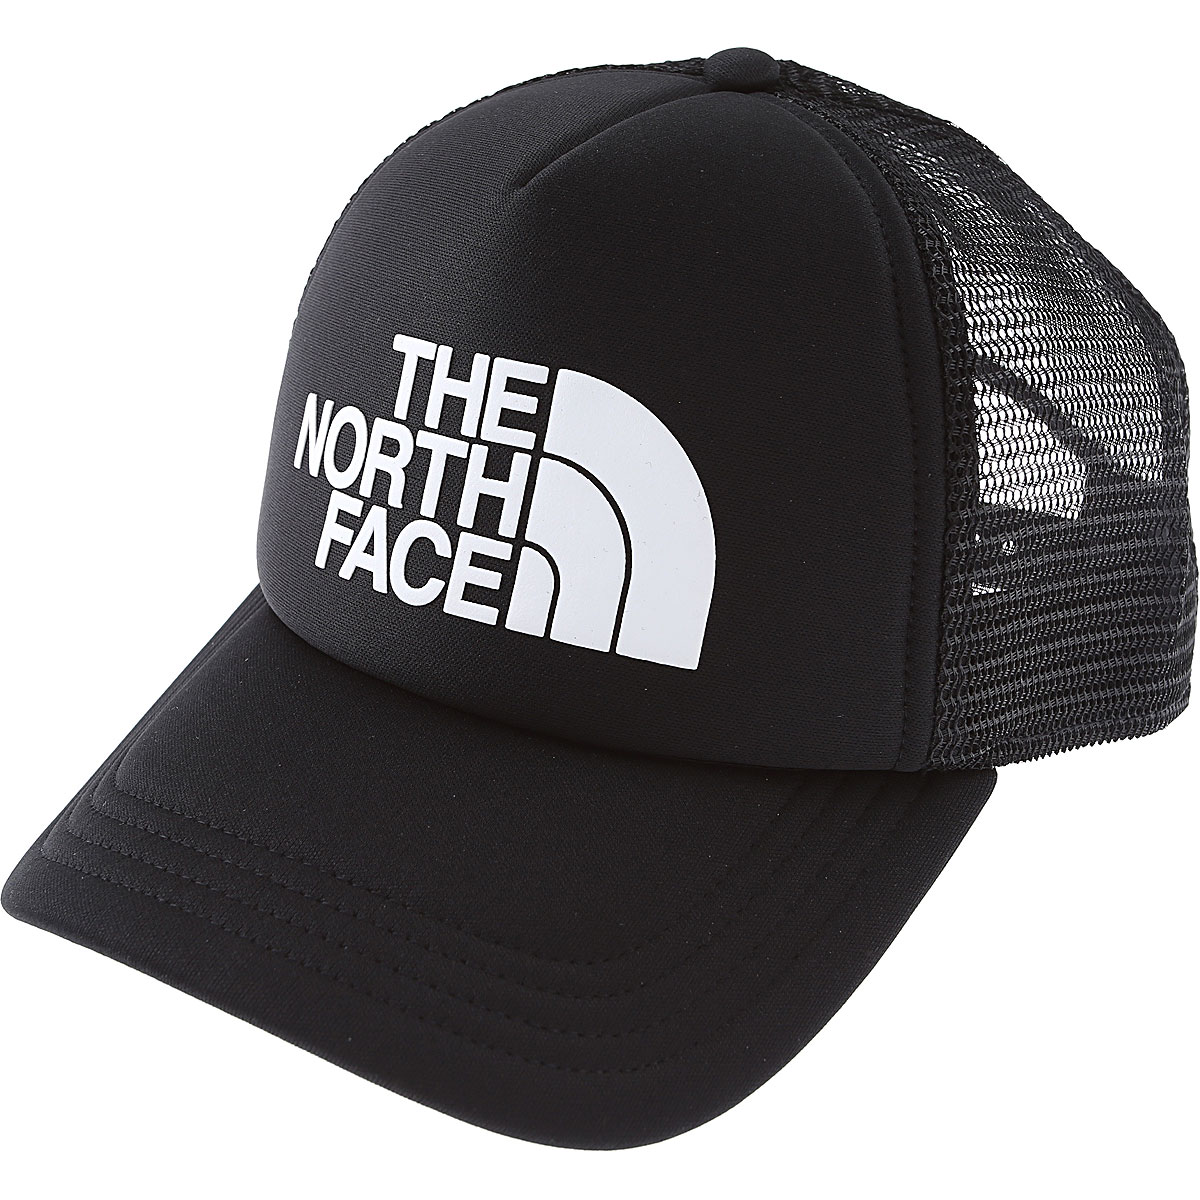 The North Face Mens Clothing On Sale, Black, polyestere, 2019